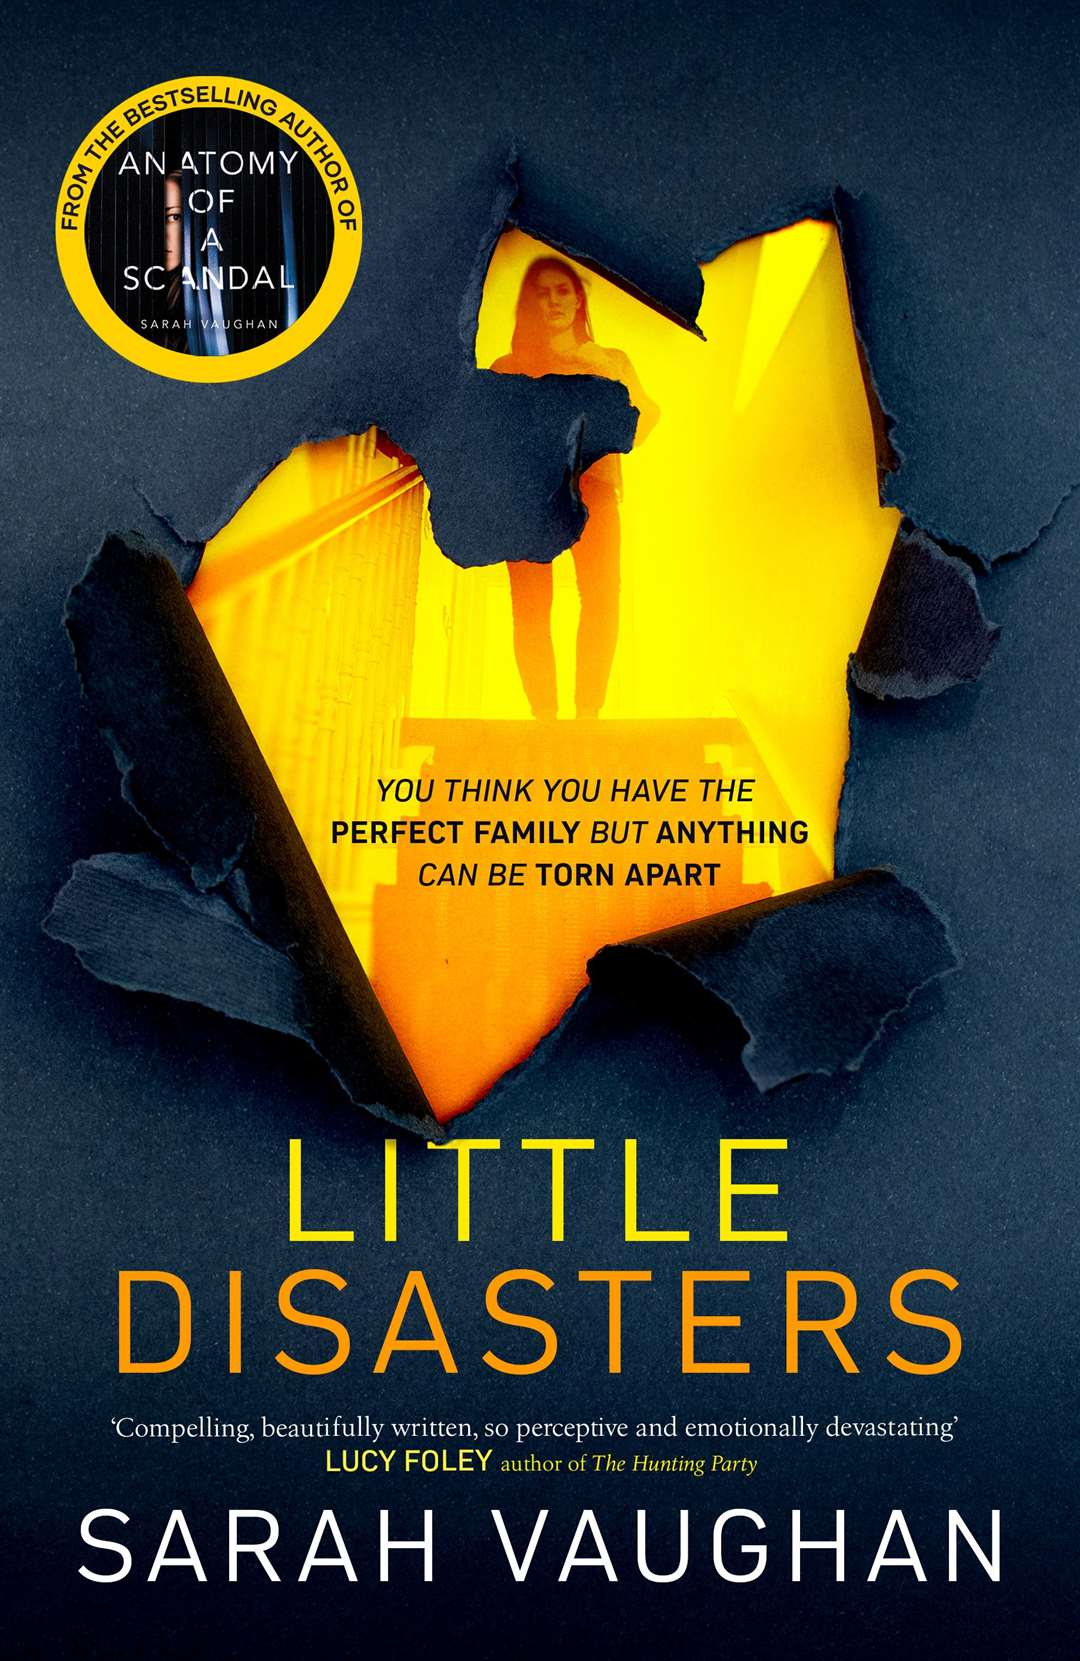 Little Disasters, Sarah Vaughan, Simon & Schuster (34078987)